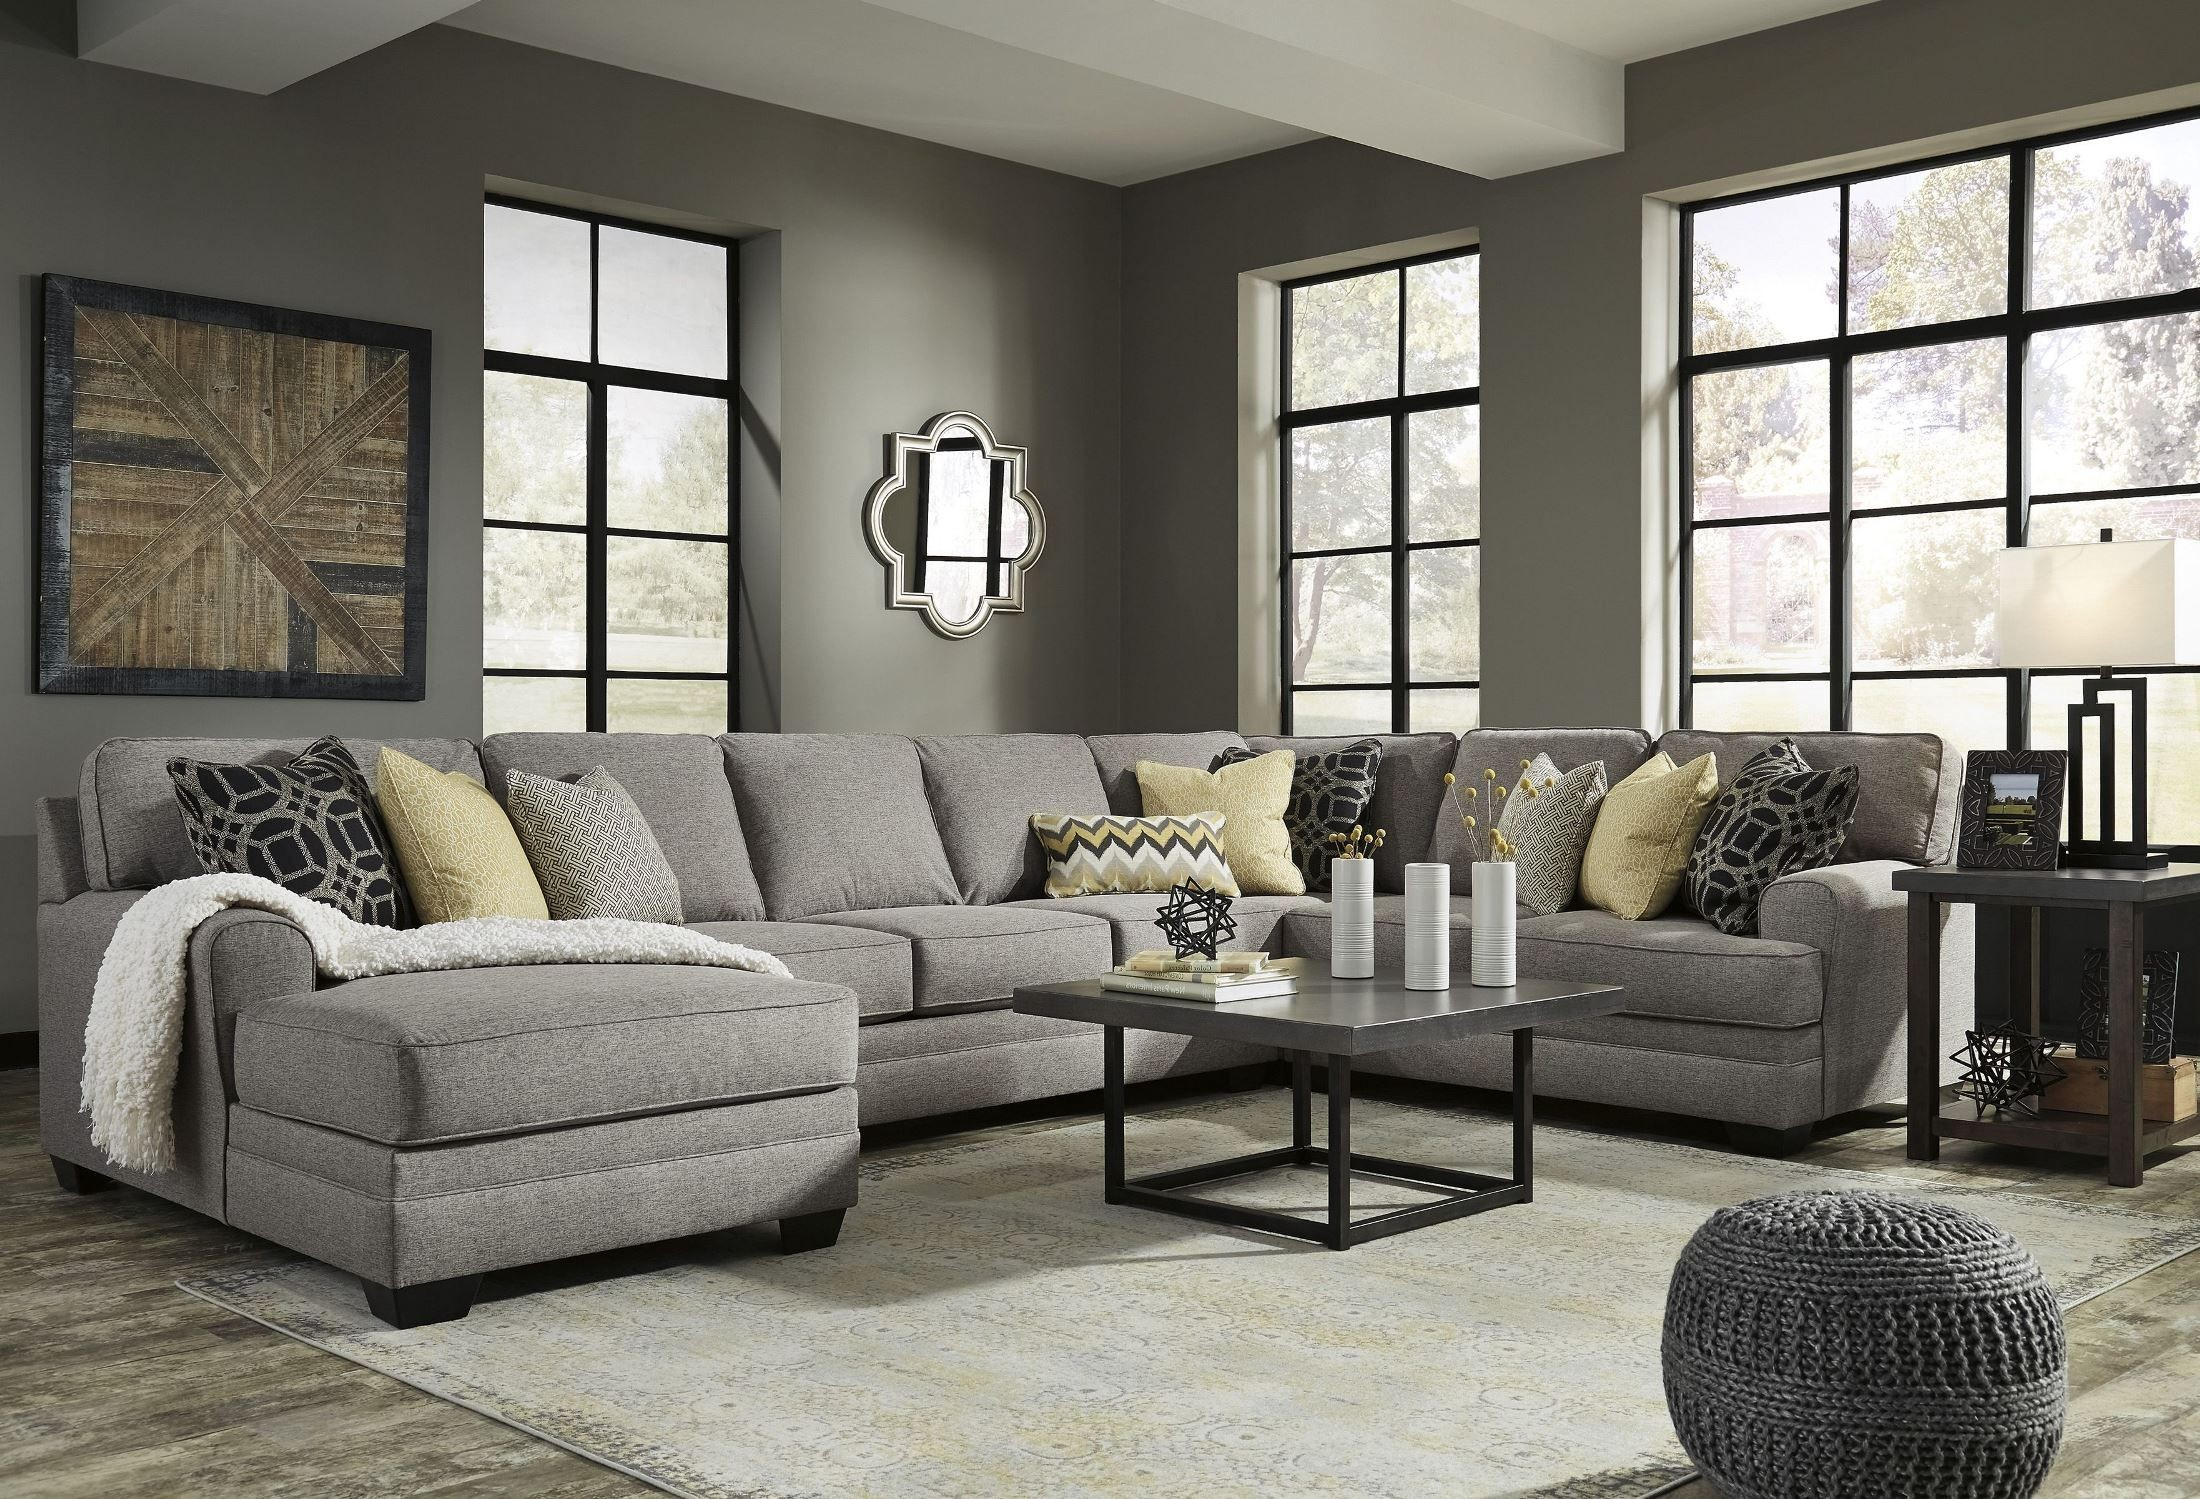 Cresson Pewter LAF Chaise Sectional from Ashley